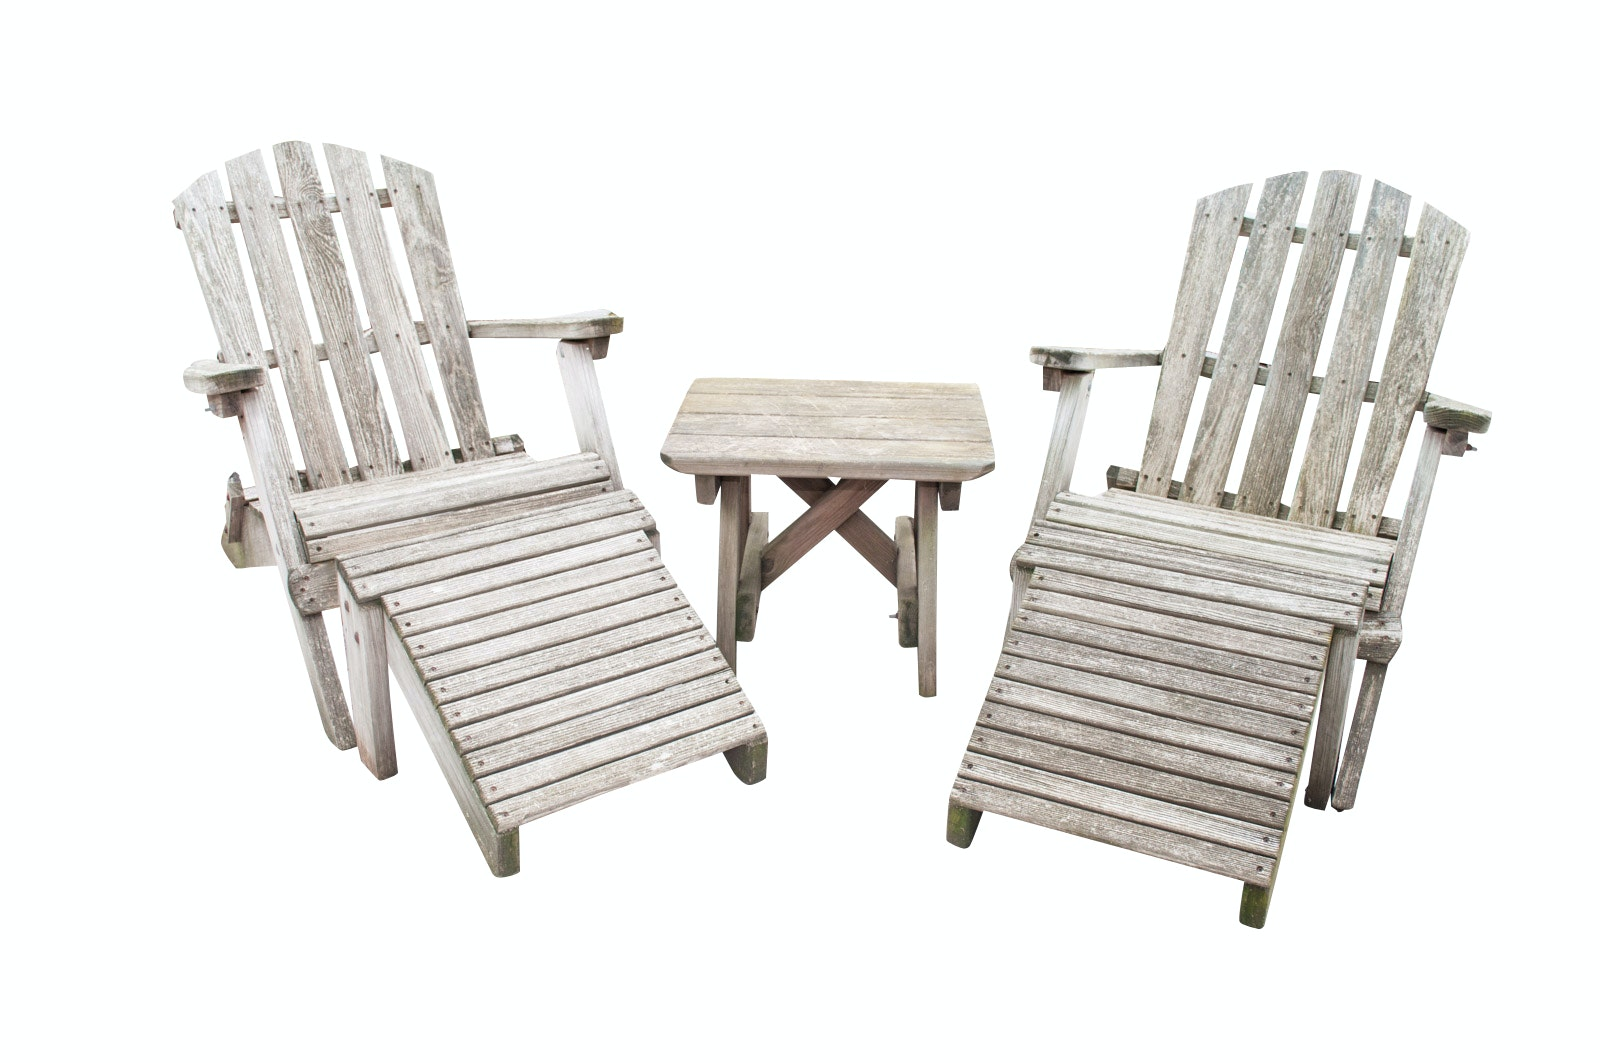 Rustic Adirondack Chairs With Side Table ...